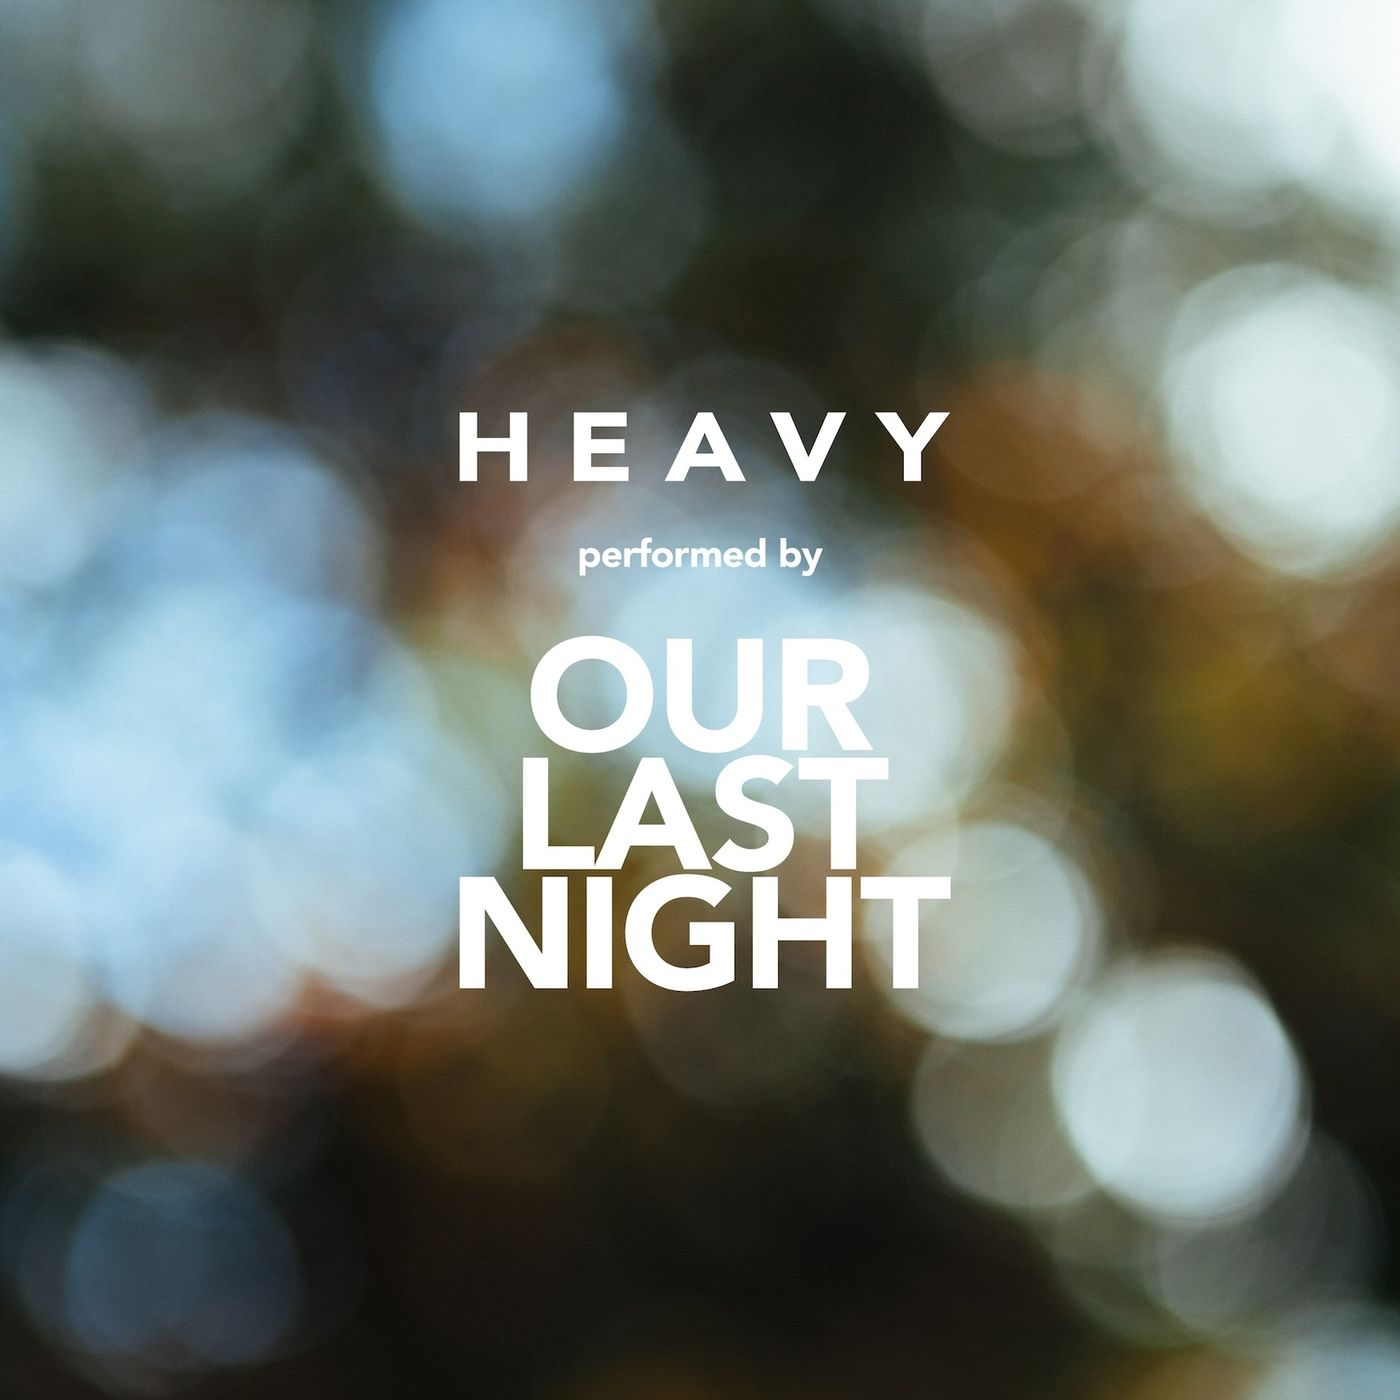 Our Last Night - Heavy [Linkin Park Cover] (2017) » CORE RADIO!